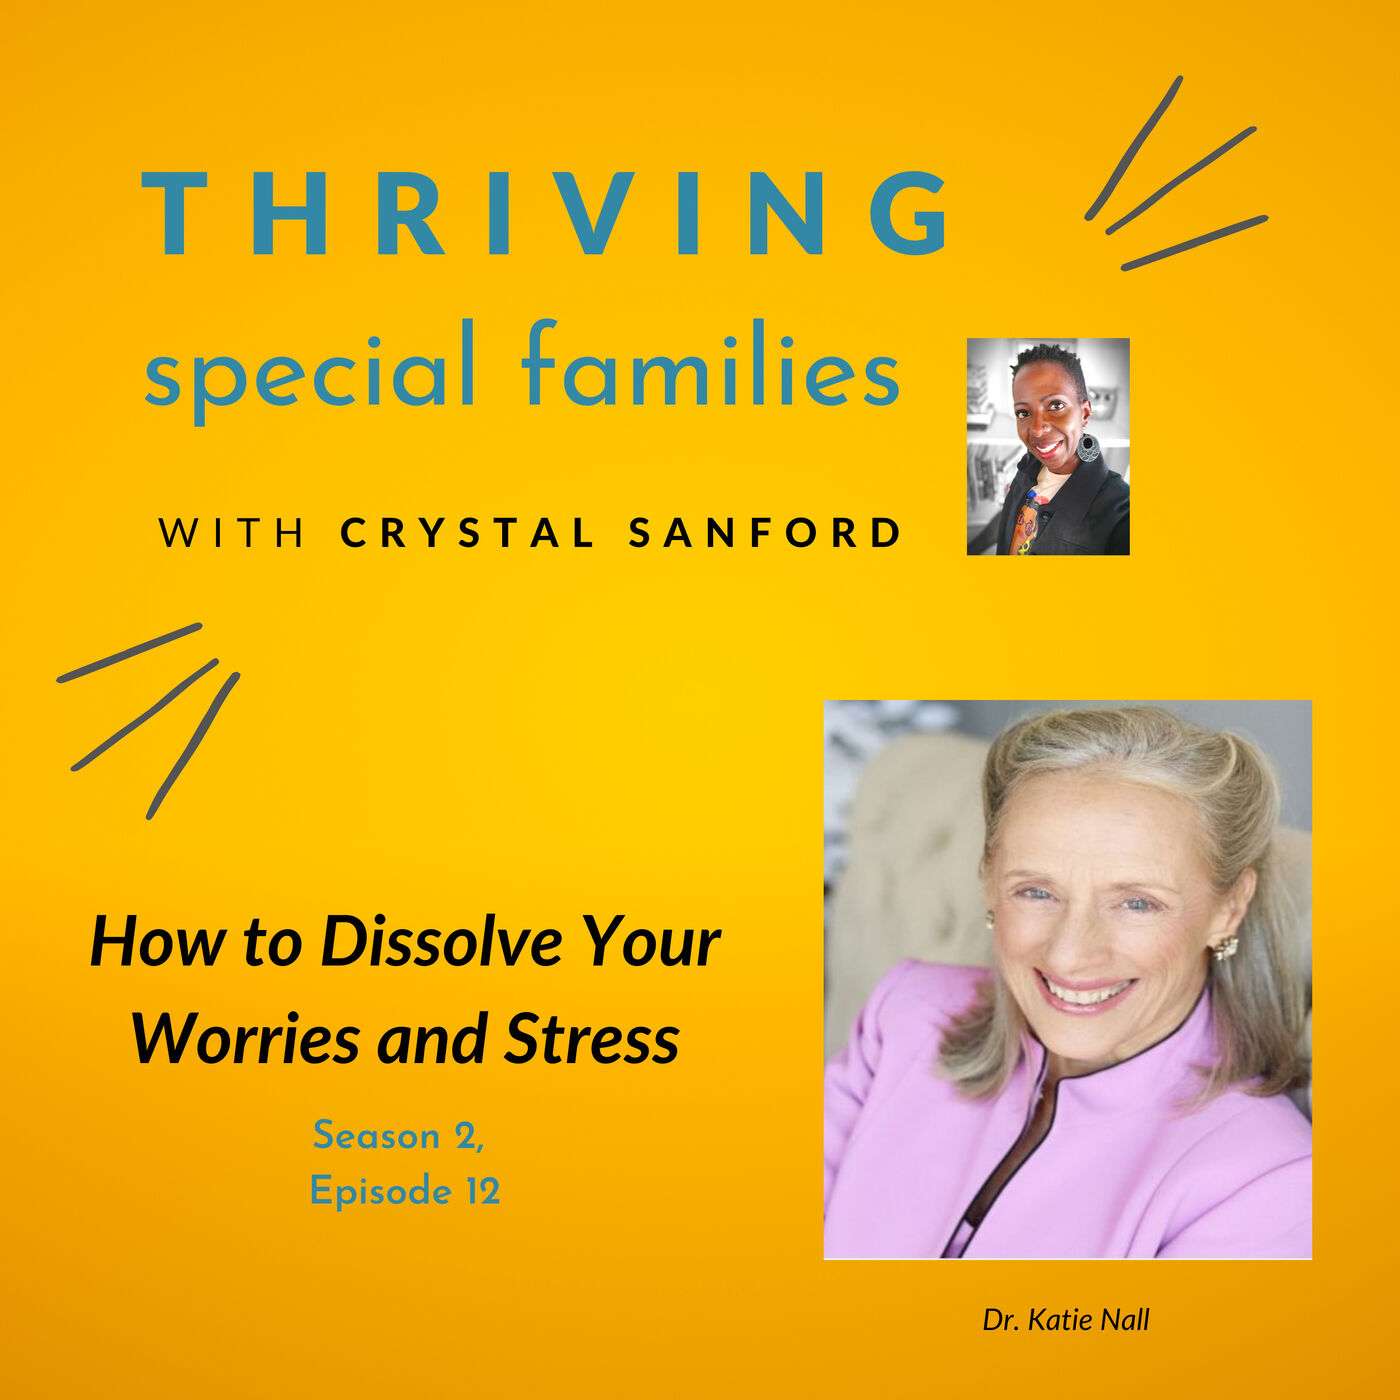 How To Dissolve Your Worries And Stress